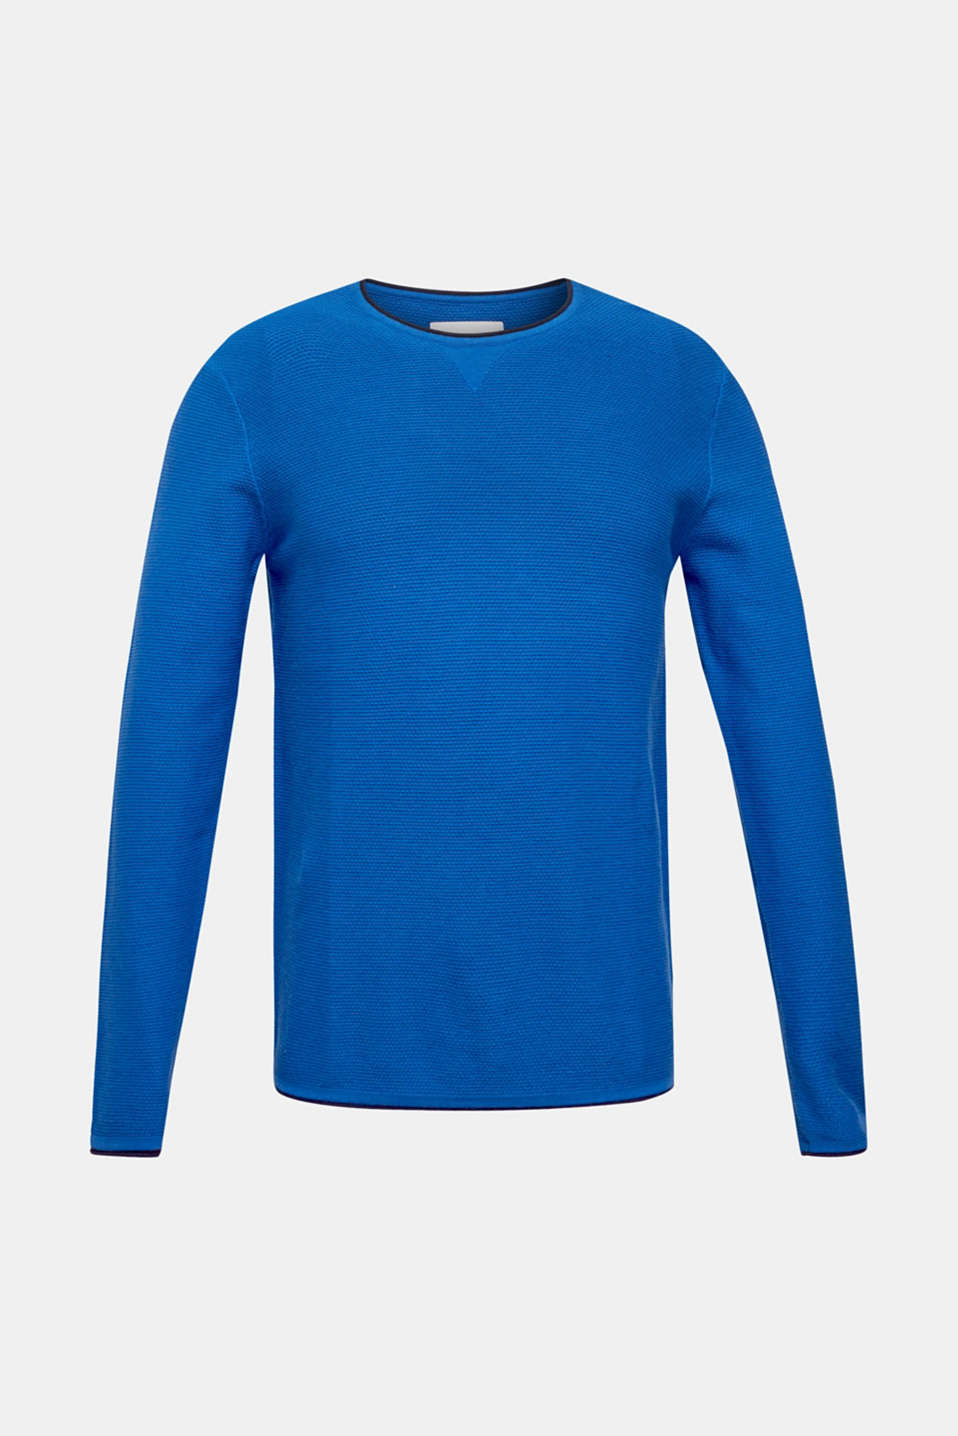 Textured jumper made of 100% cotton, BLUE 5, detail image number 6